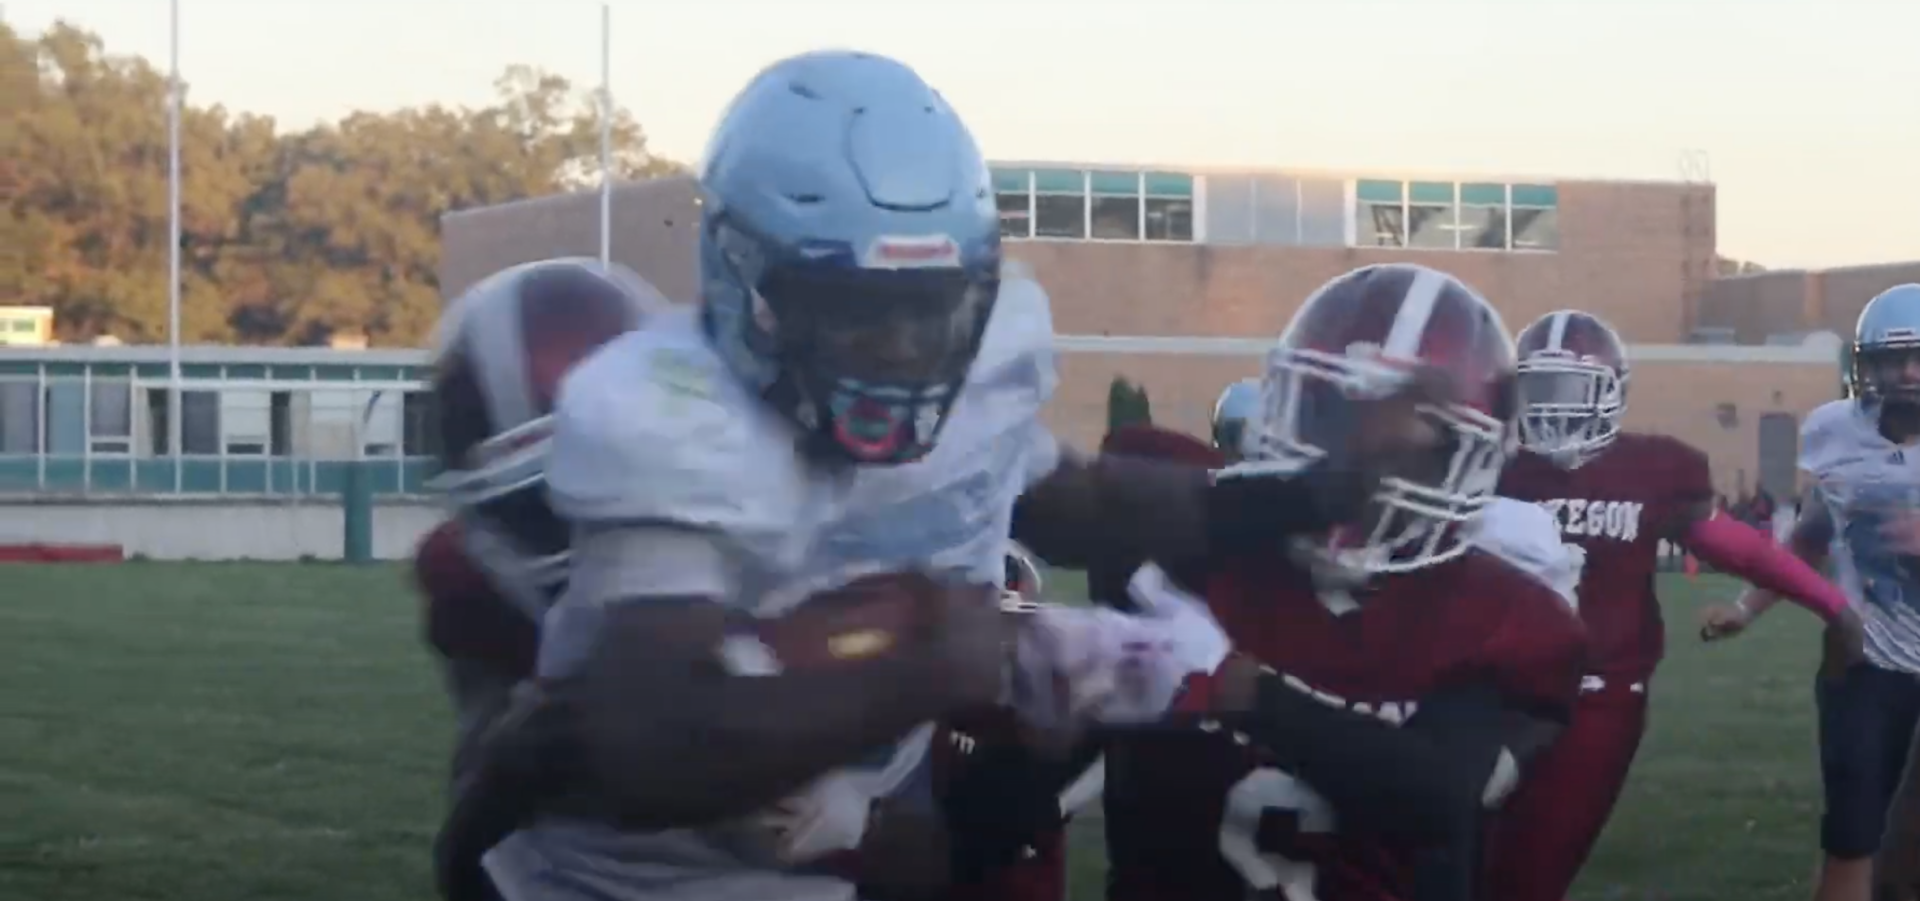 [VIDEO] A thousand fans attend 8th grade football game between Muskegon and Mona Shores